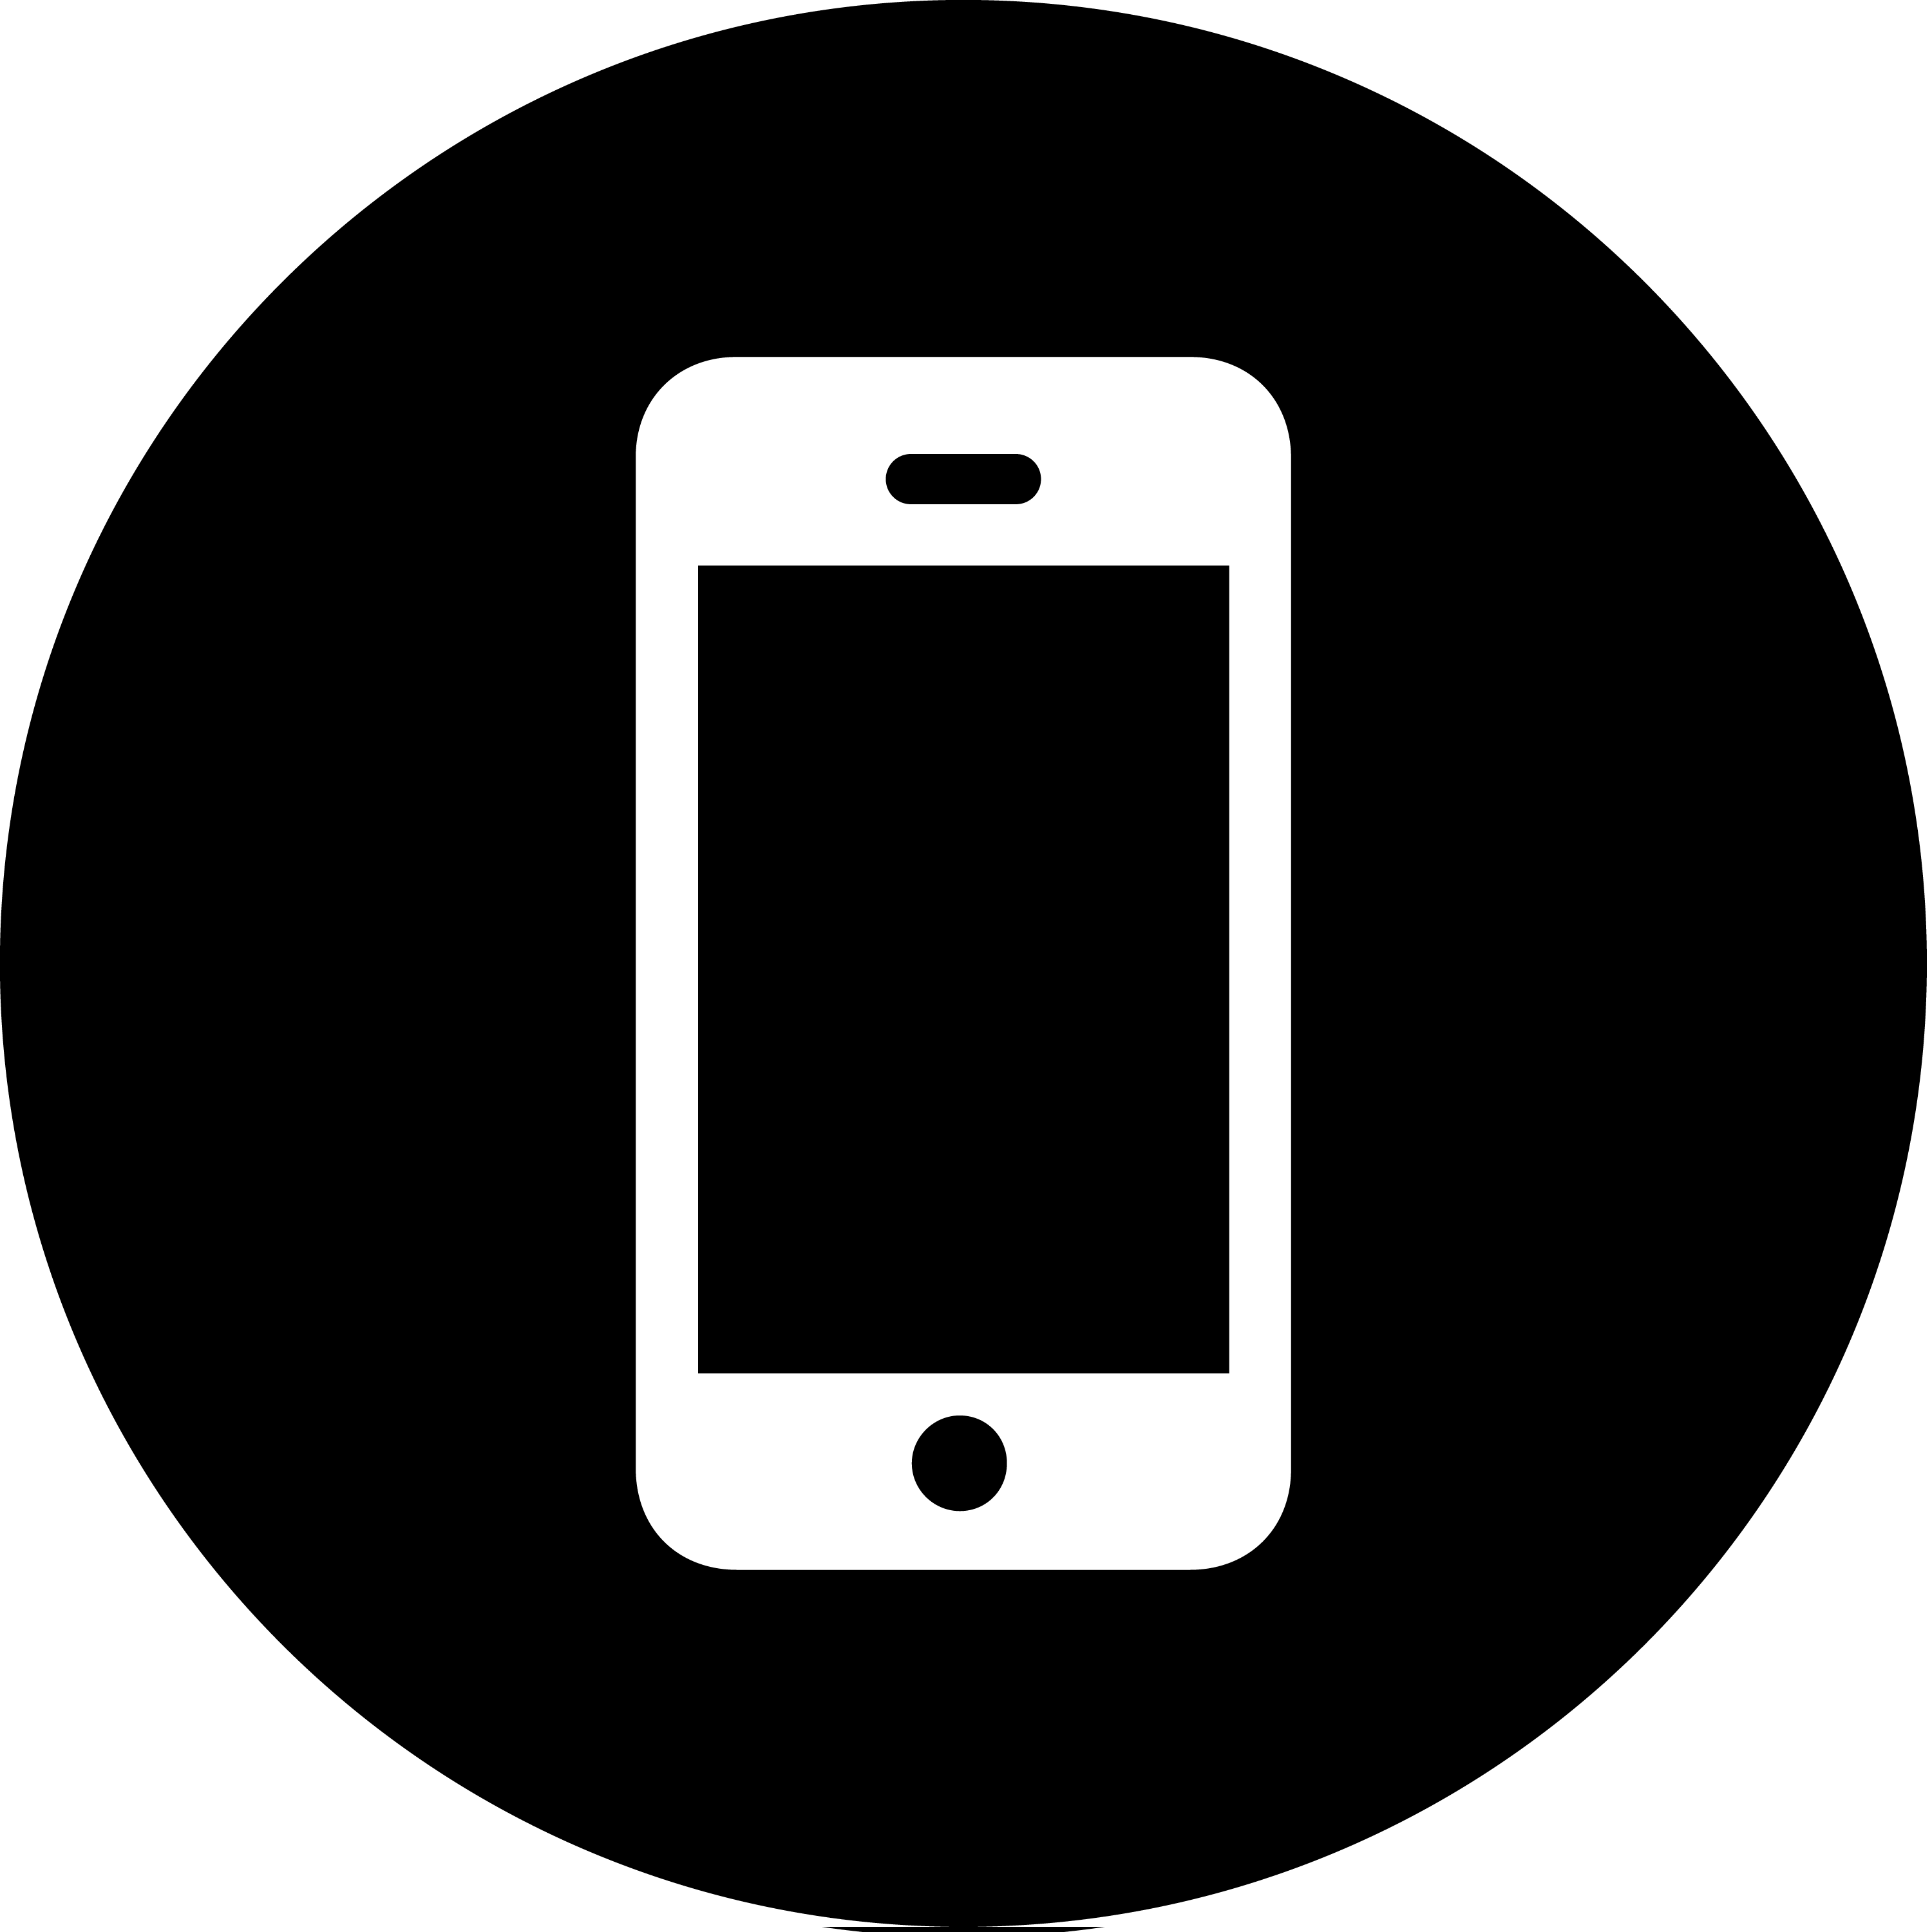 mobile telephone transparent png logos #5558